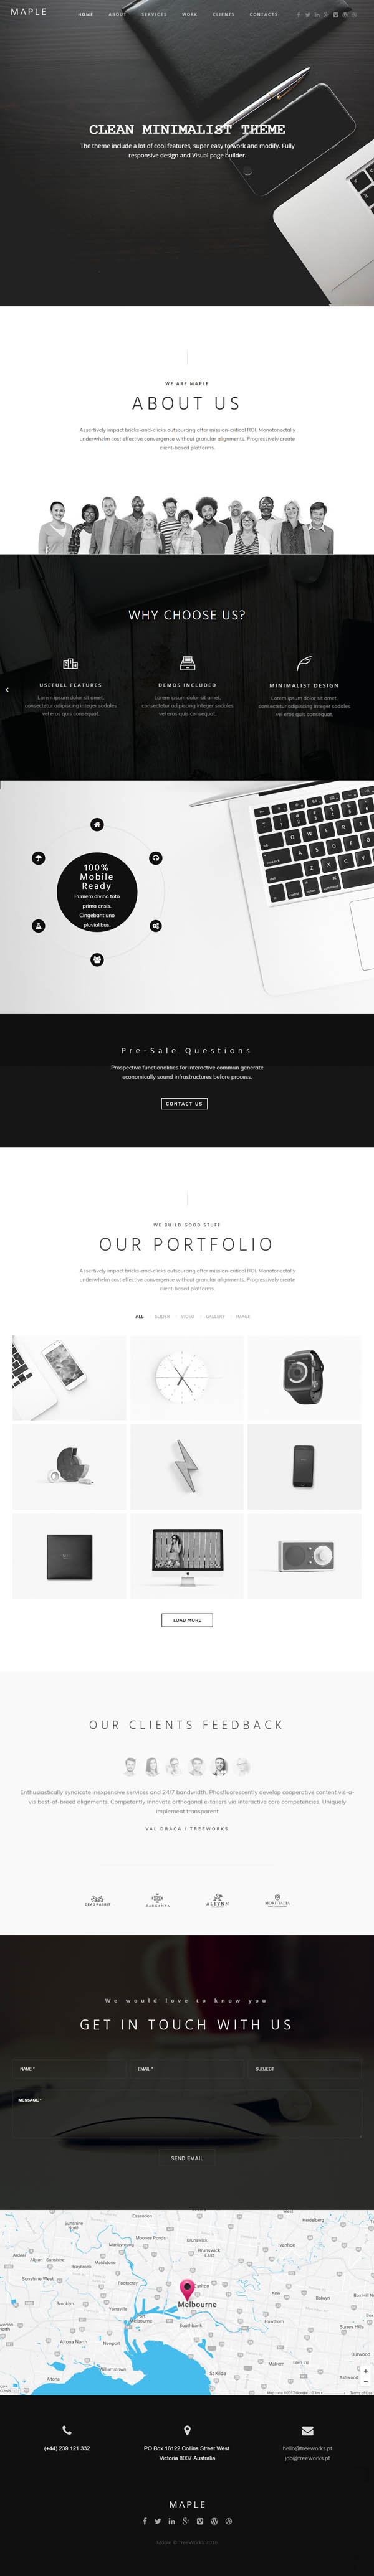 Maple - Responsive Clean Multi-Purpose WordPress Theme